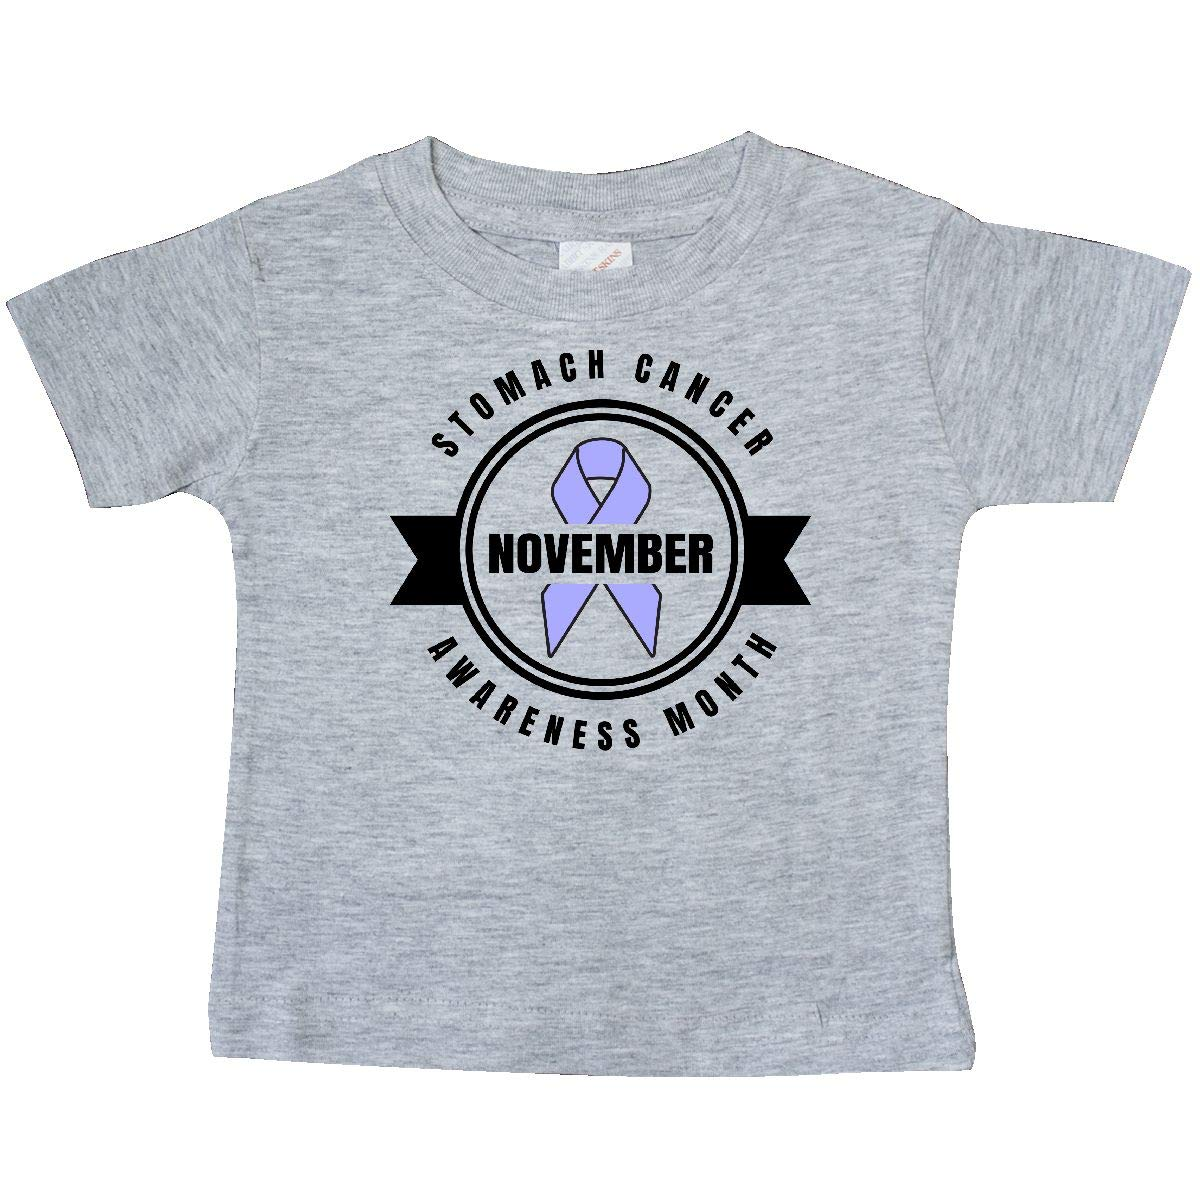 inktastic November Stomach Cancer Awareness Month Baby T-Shirt